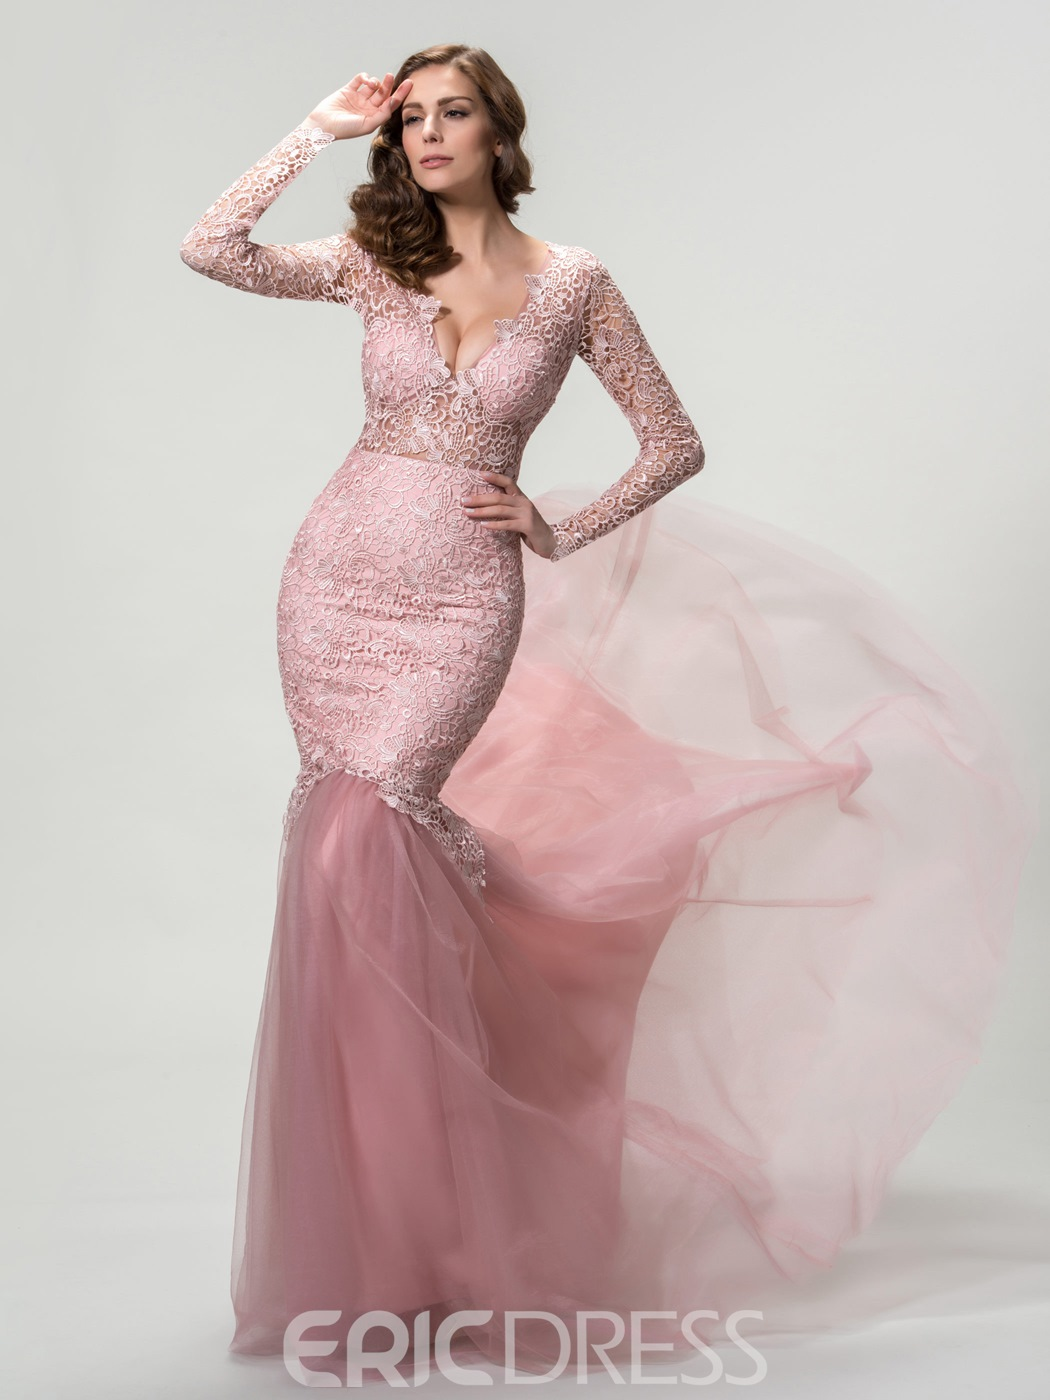 Mermaid Long Sleeves Deep V-Neck Evening Dress 11292074 - Ericdress.com